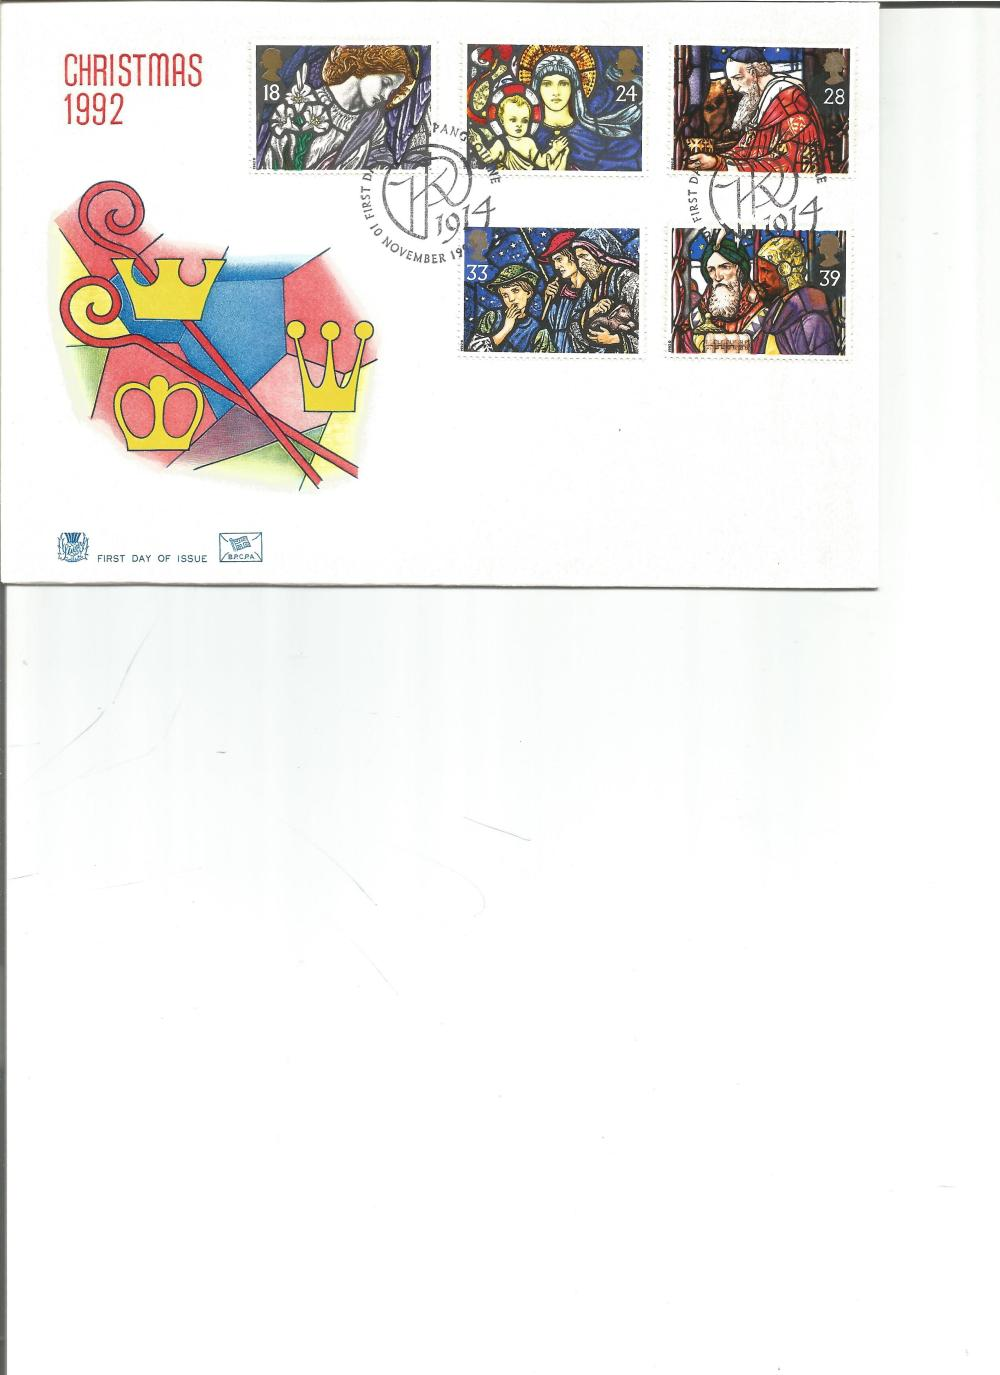 FDC Christmas 1992 c/w set of five commemorative stamps PM 10th November 1992. We combine postage on